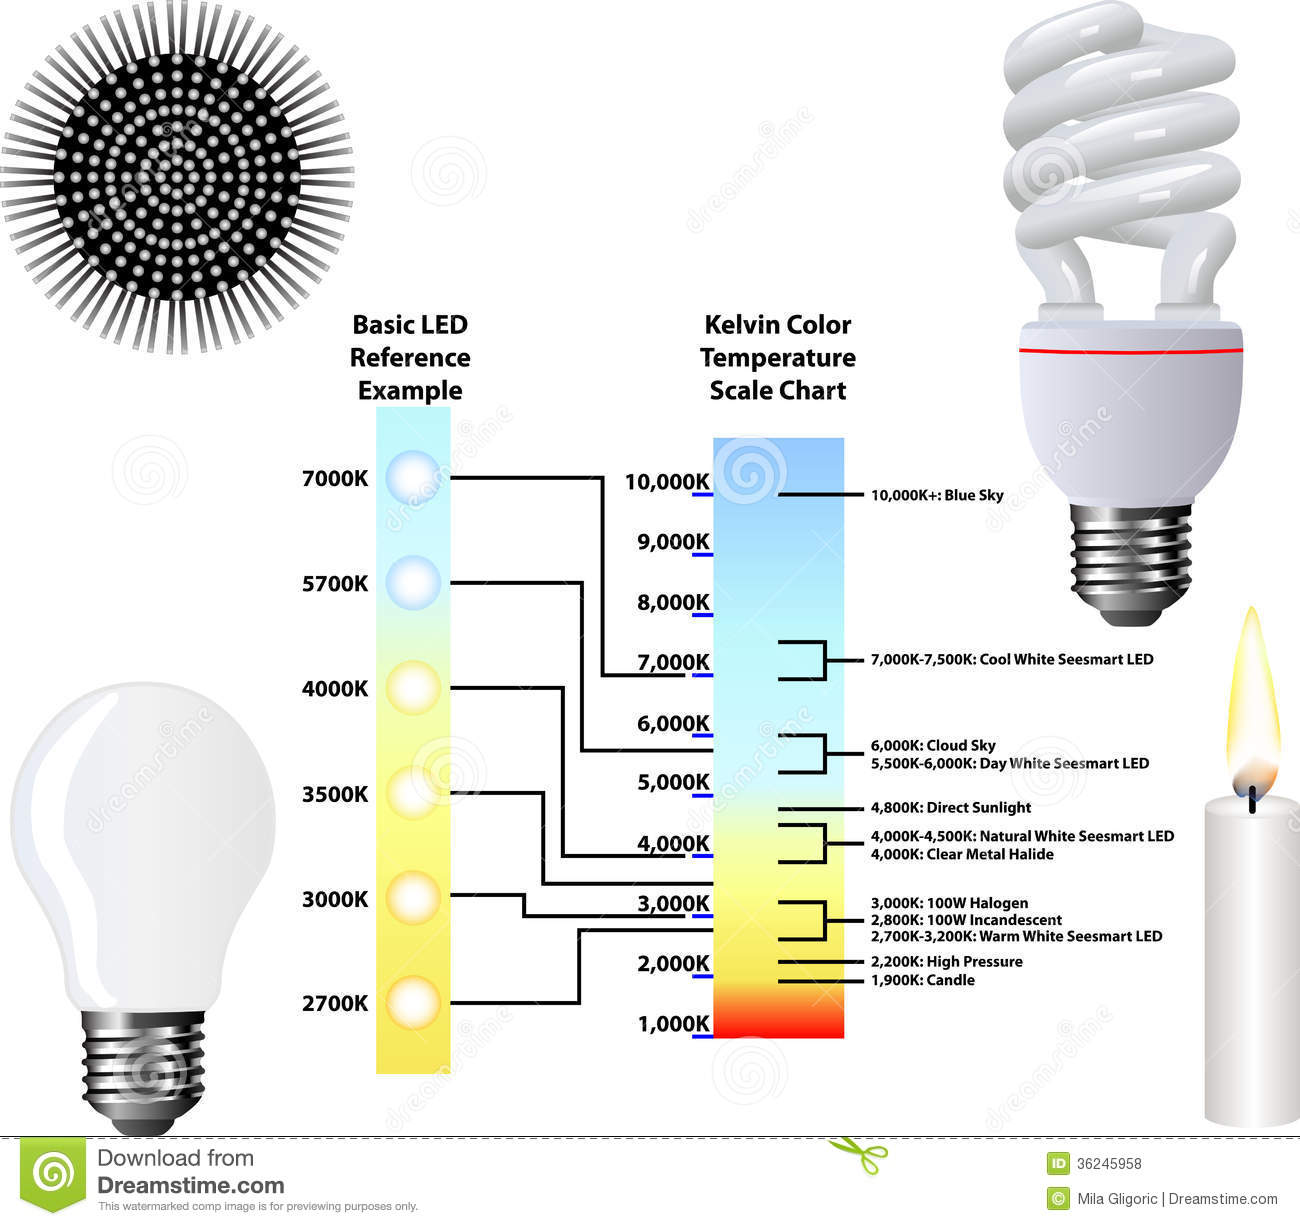 4000k Hid Vs 10000k Hid furthermore Watts Lumens Cheat Sheet as well 729274 4300k Vs 5000k Hid Color Temperature  parison in addition Lux as well Blog. on lumens color chart